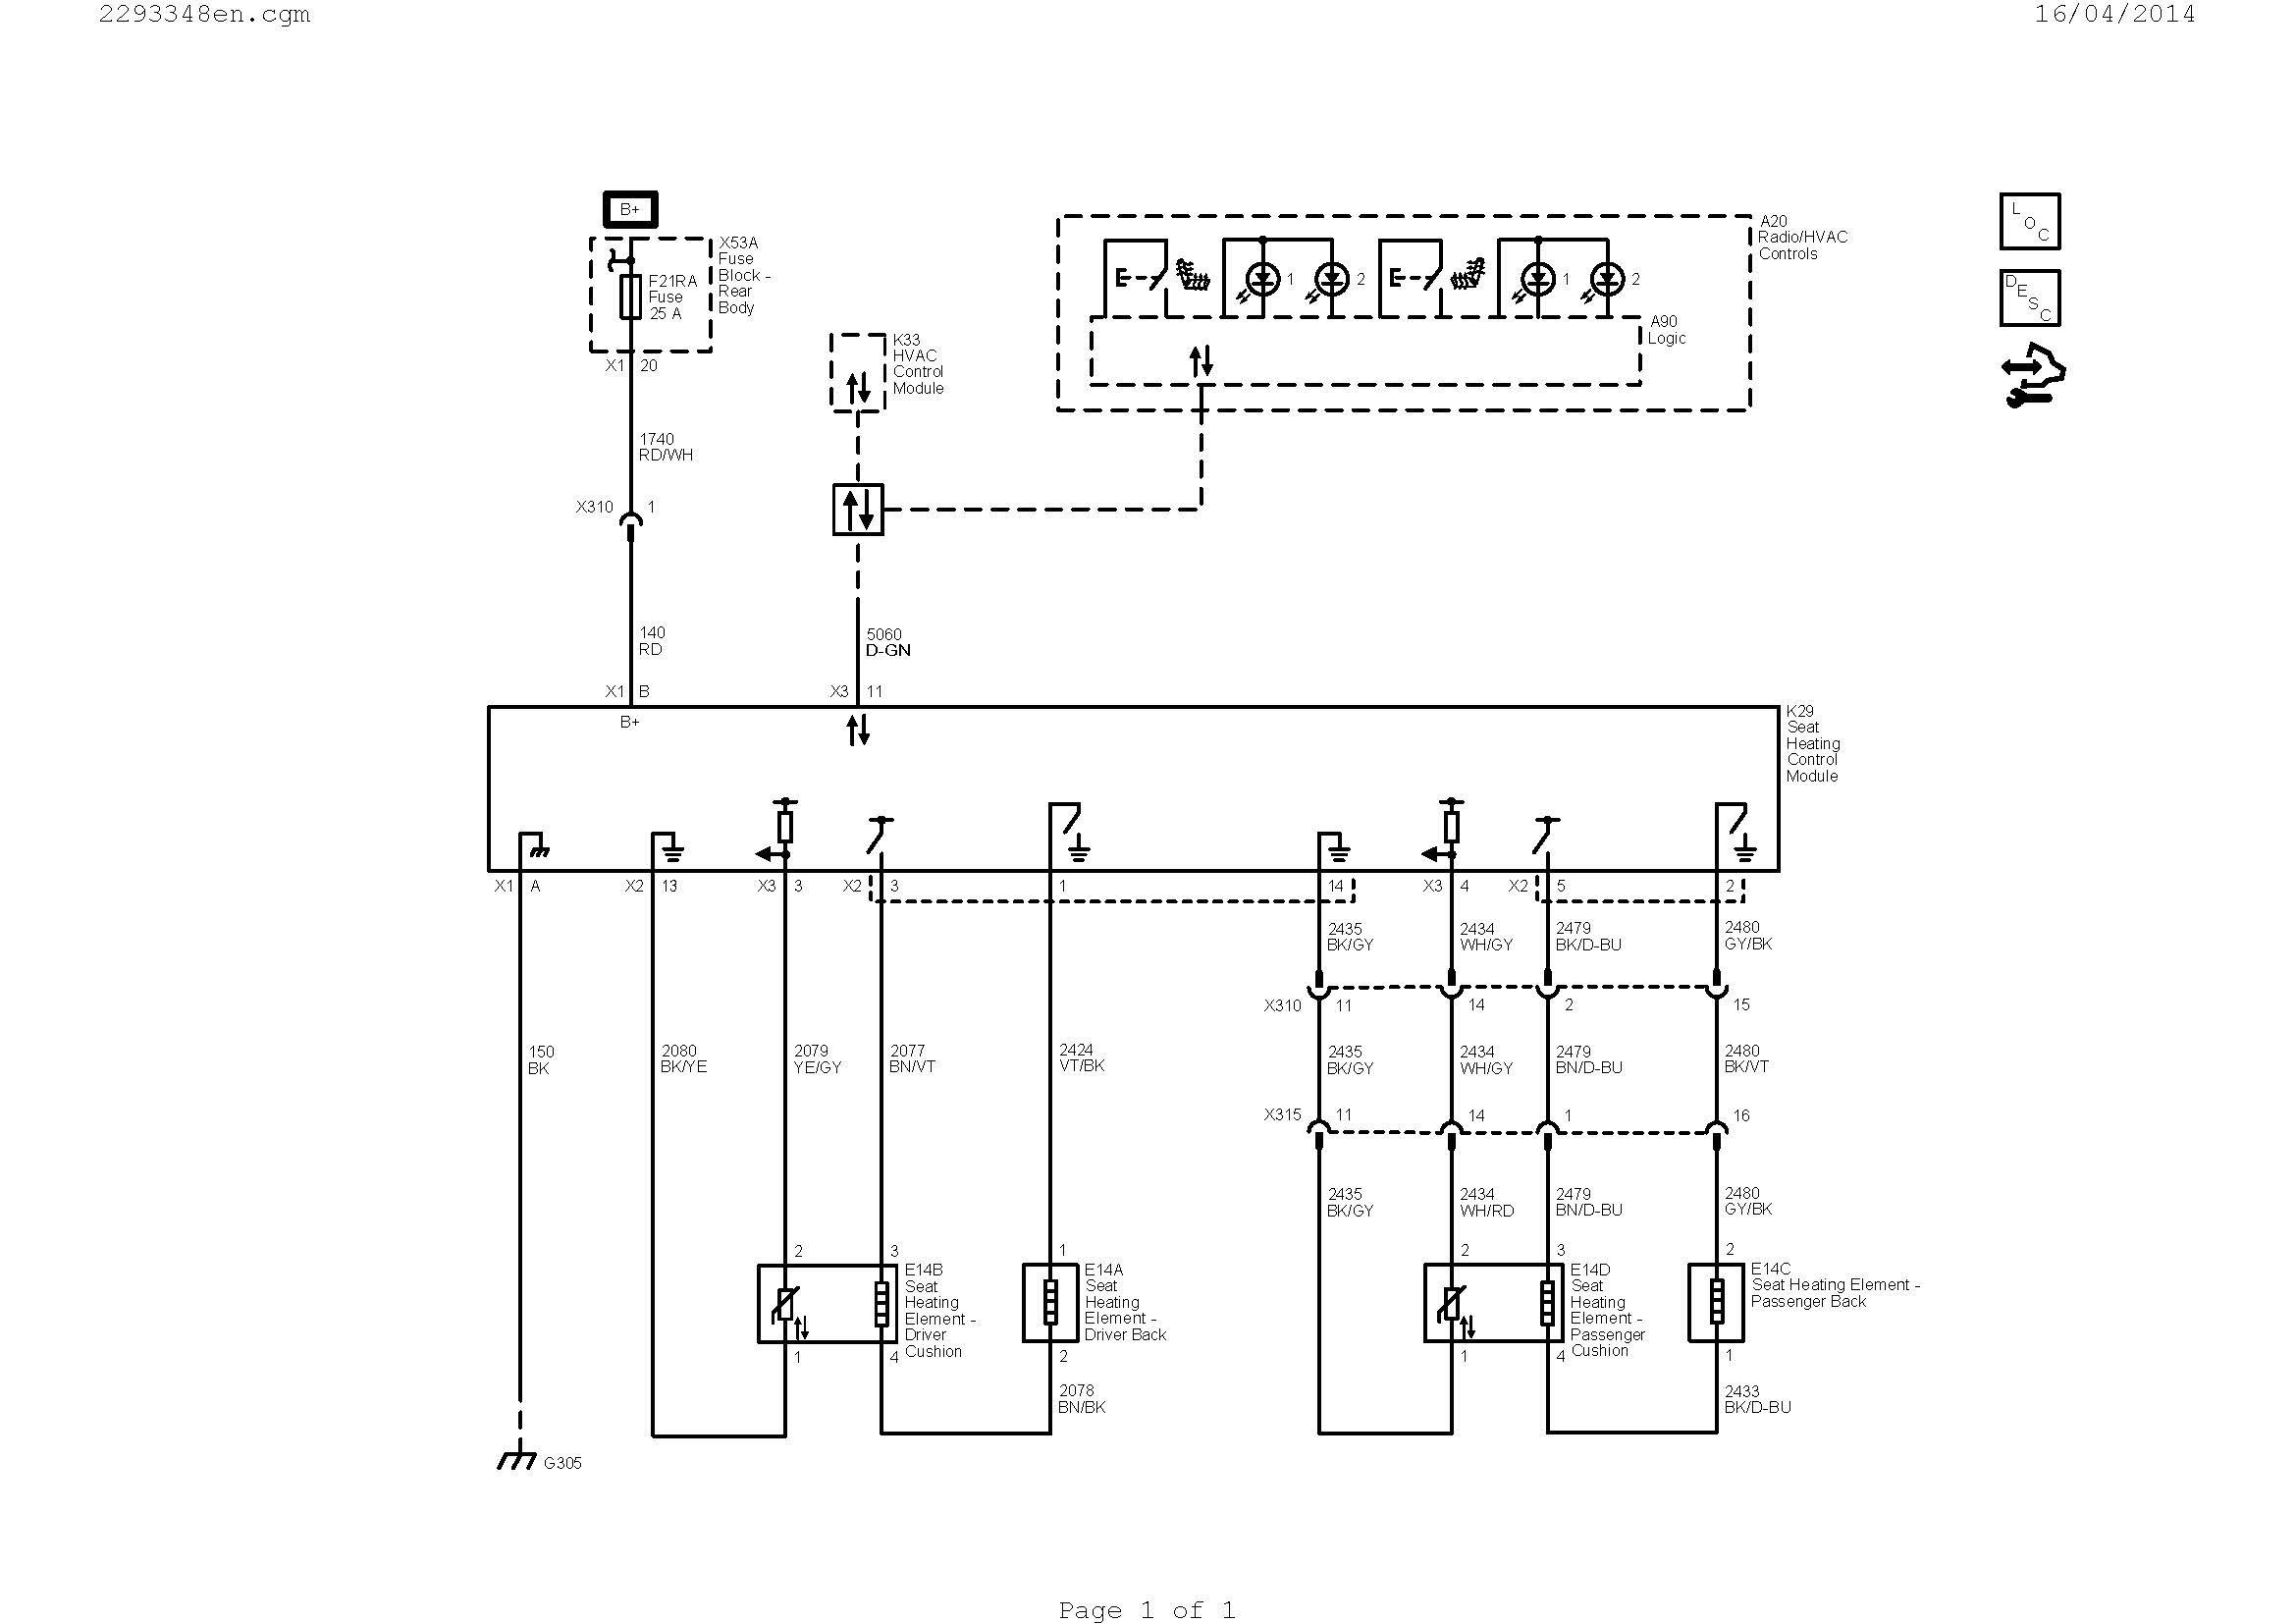 Thermostat Wiring Diagram - Wiring A Ac thermostat Diagram New Wiring  Diagram Ac Valid Hvac Diagram